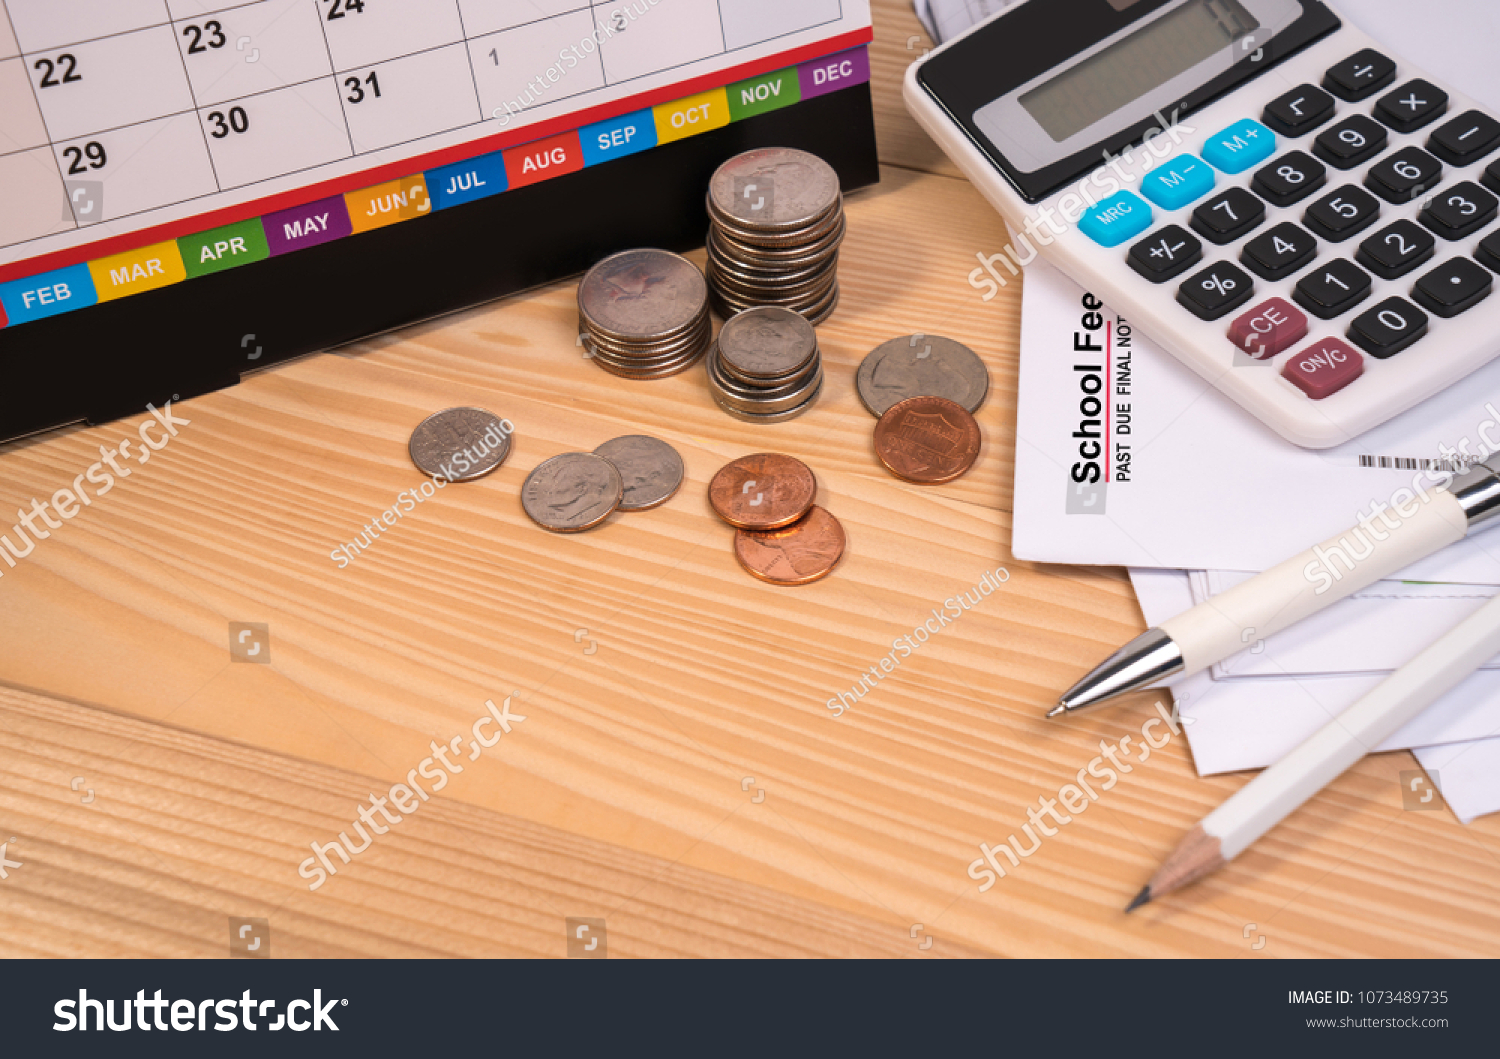 School Fee Past Due Final Notice Stock Photo & Image (Royalty-Free ...